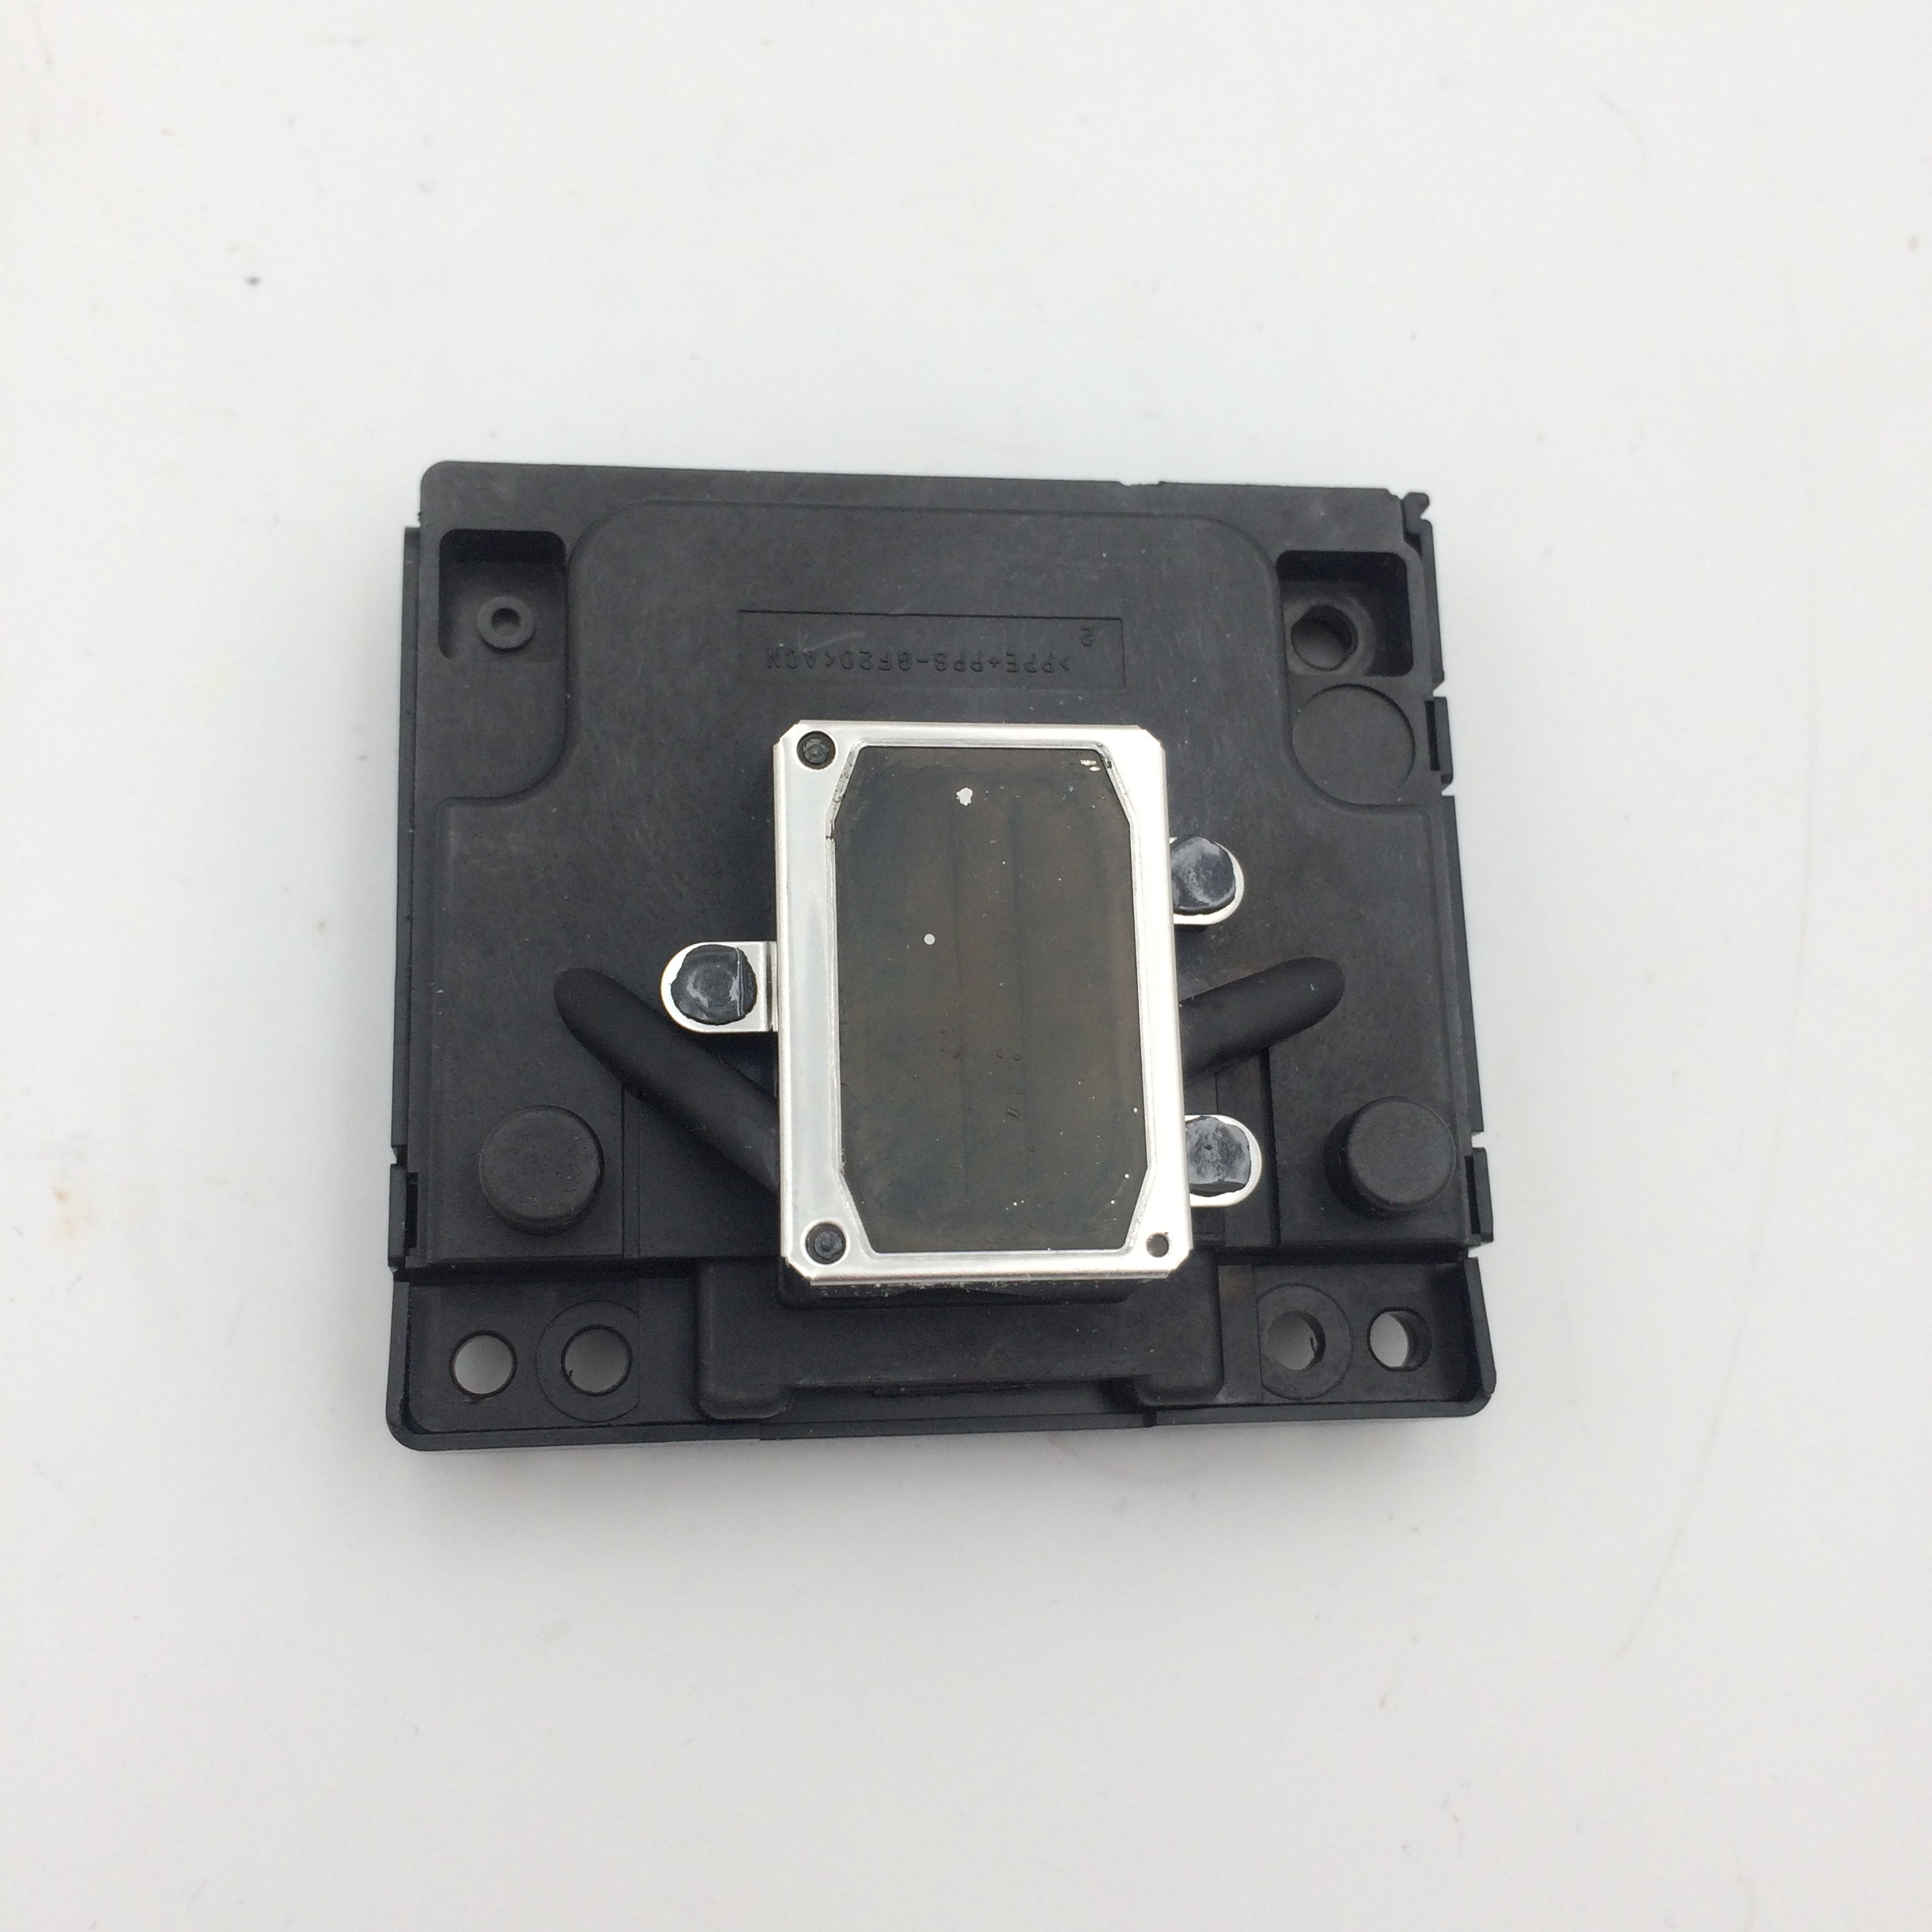 used F181010 Printhead for <font><b>Epson</b></font> T10 T11 T13 T20 T21 T22 T25 TX100 TX102 TX105 TX121 TX135 TX220 TX300 <font><b>TX320F</b></font> printer image